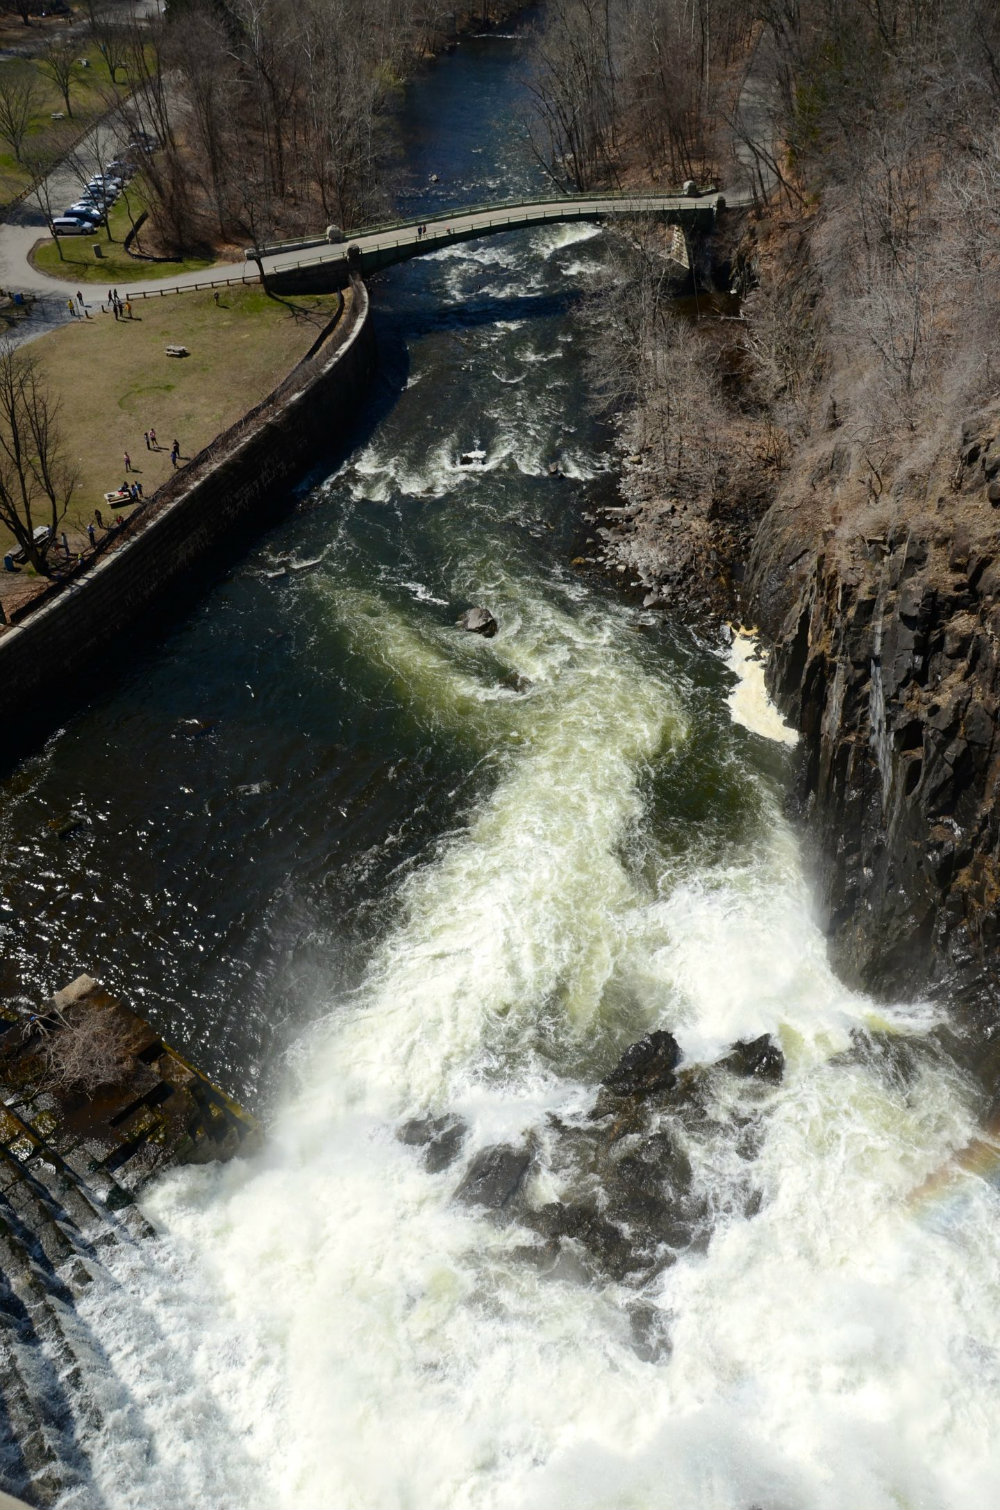 Looking down at the waterfall at New Croton Dam in Westchester, New York.